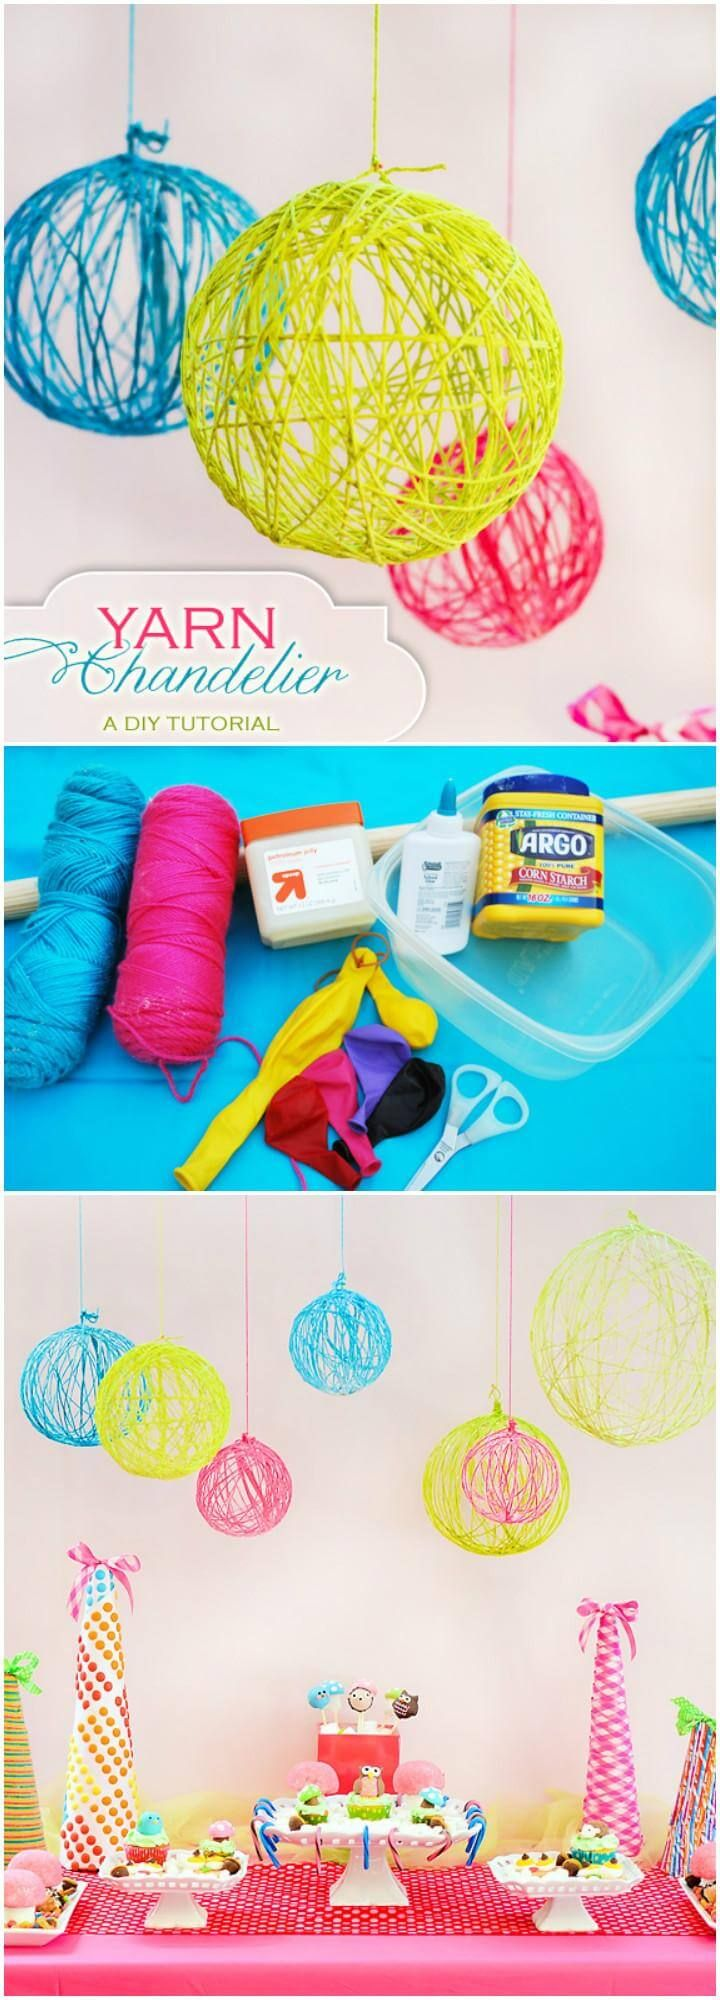 200 Best DIY Craft Ideas and Projects for Teen Girls   – DIY projects